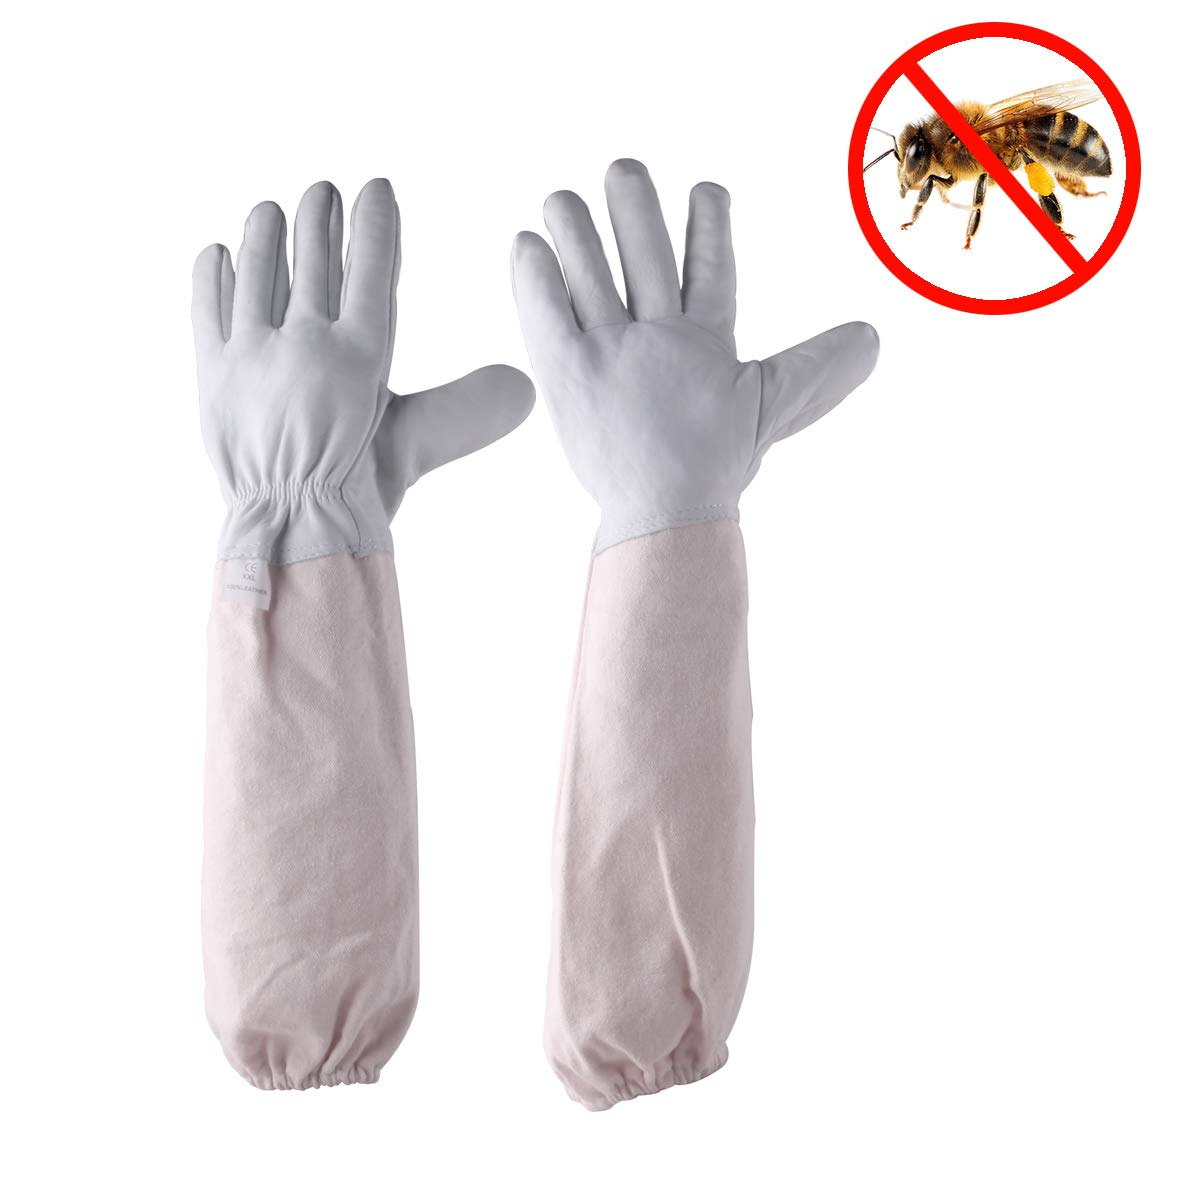 Goatskin Beekeeping Gloves with Large Vented Protection for Professional & Beginner Beekeepers